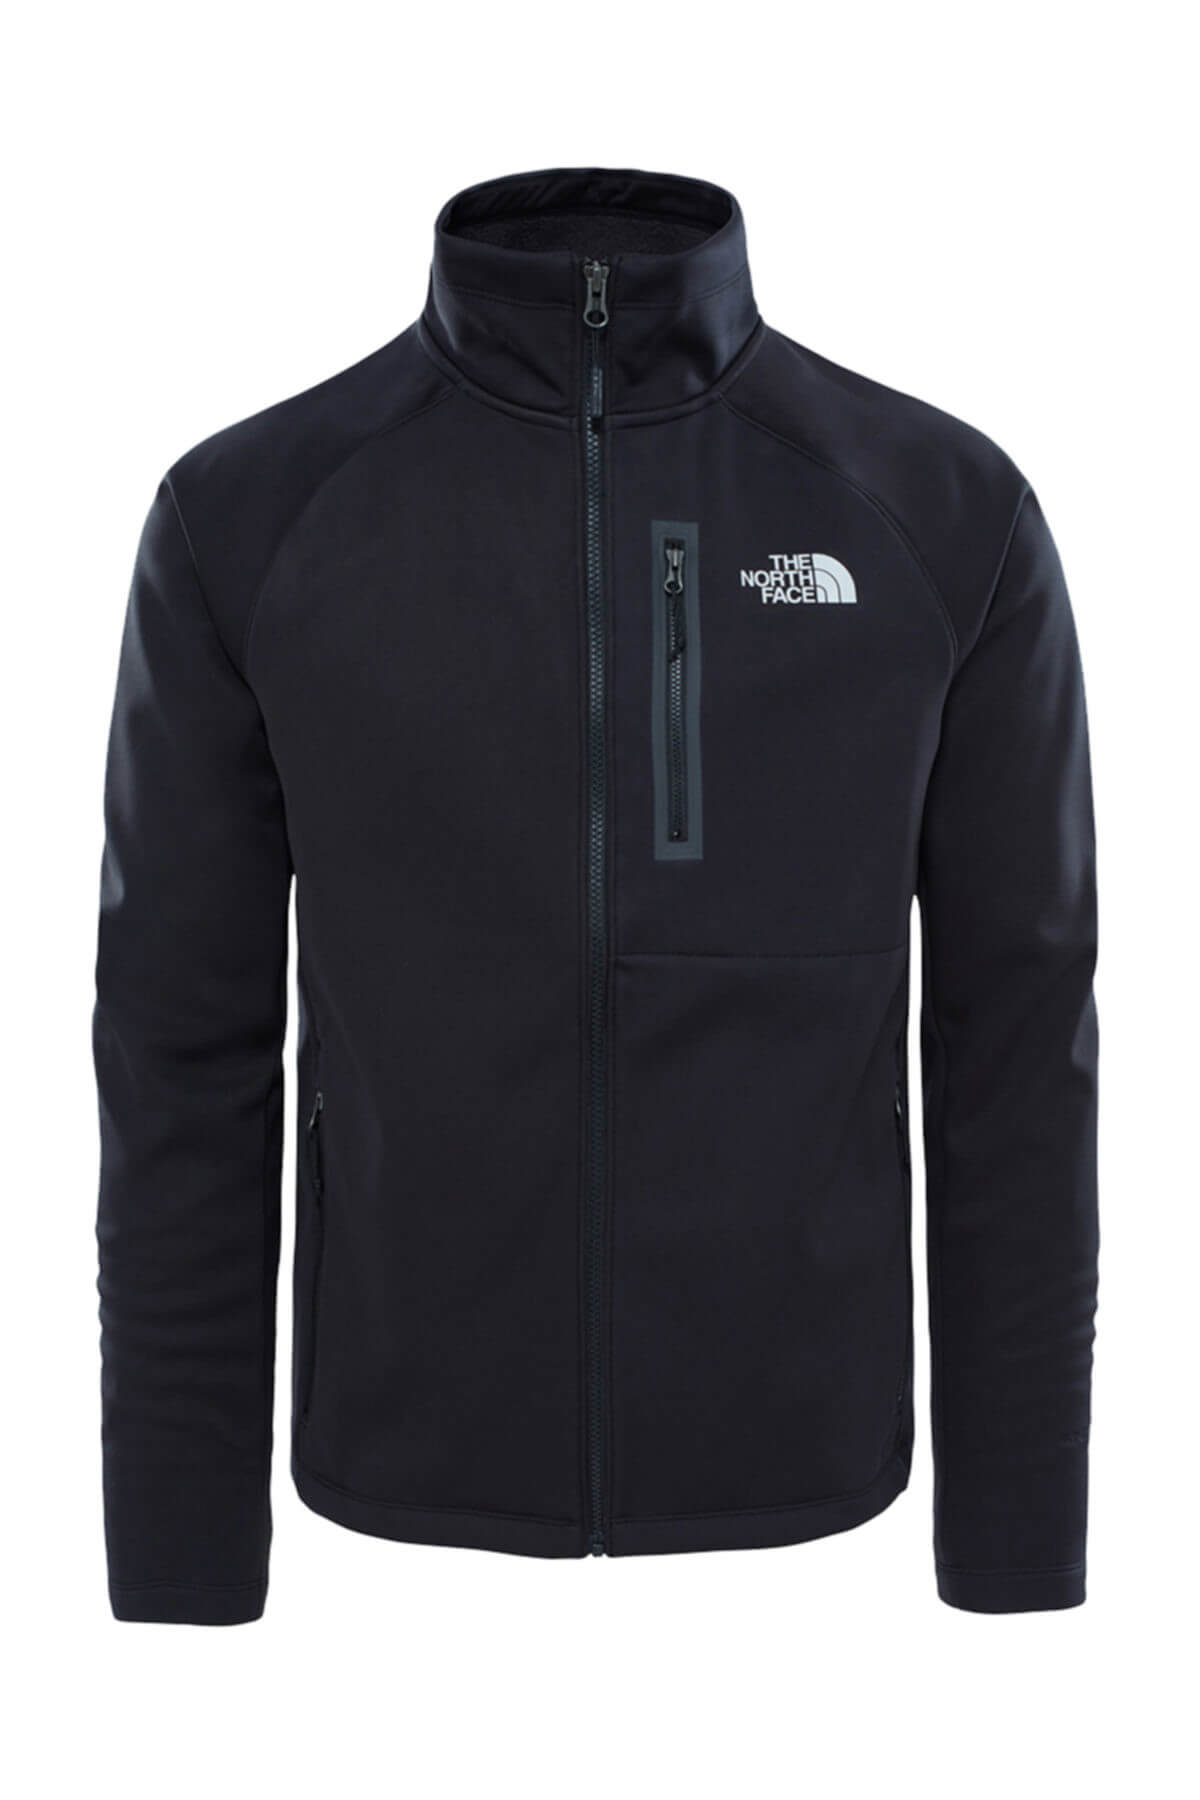 The North Face M Can Soft Shell Jkt – 727.0 TL